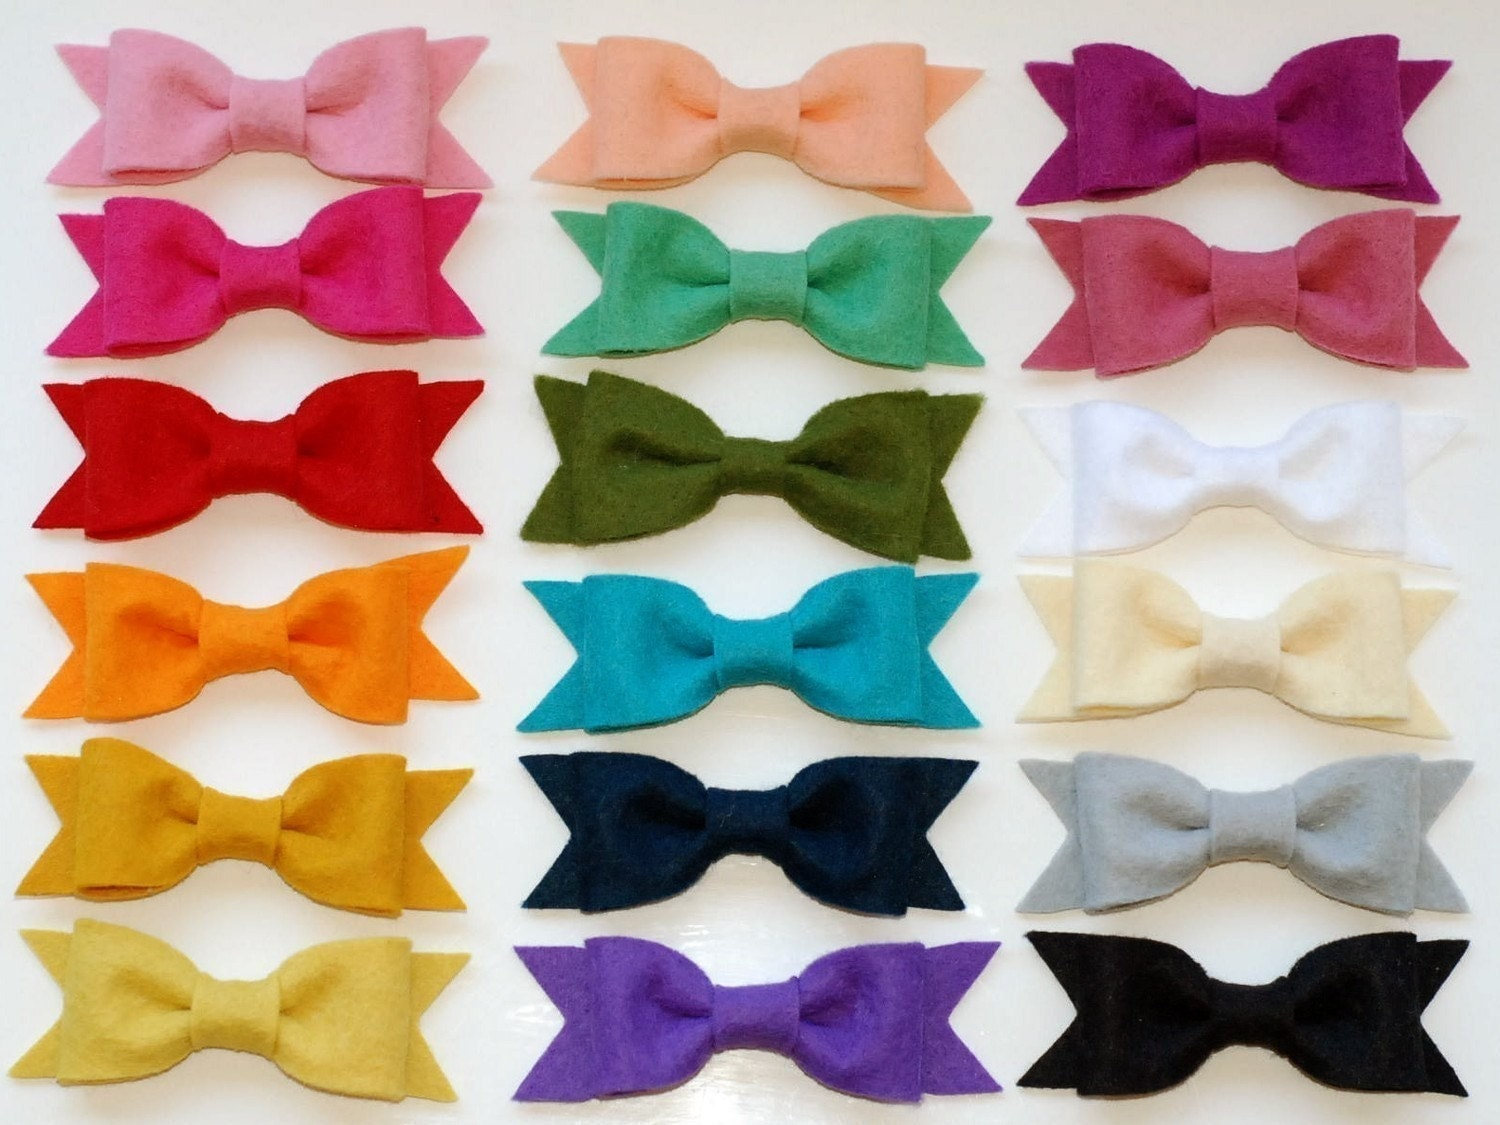 samantha felt bow set on alligator clips CHOOSE 2 IN THE COLOR(s) OF YOUR CHOICE